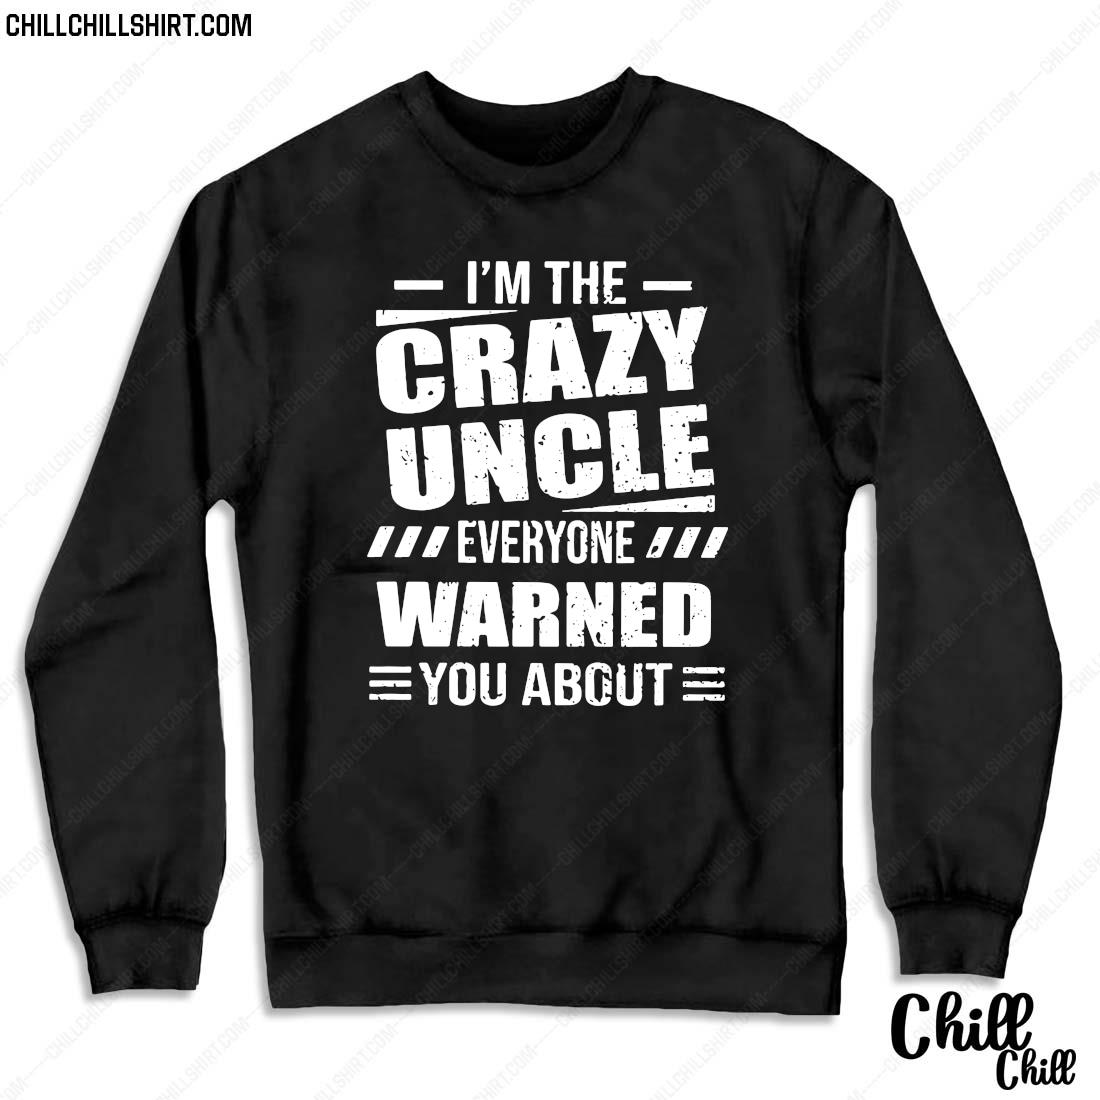 I_m The Crazy Uncle Everyone Warned You About Version Shirt Sweater